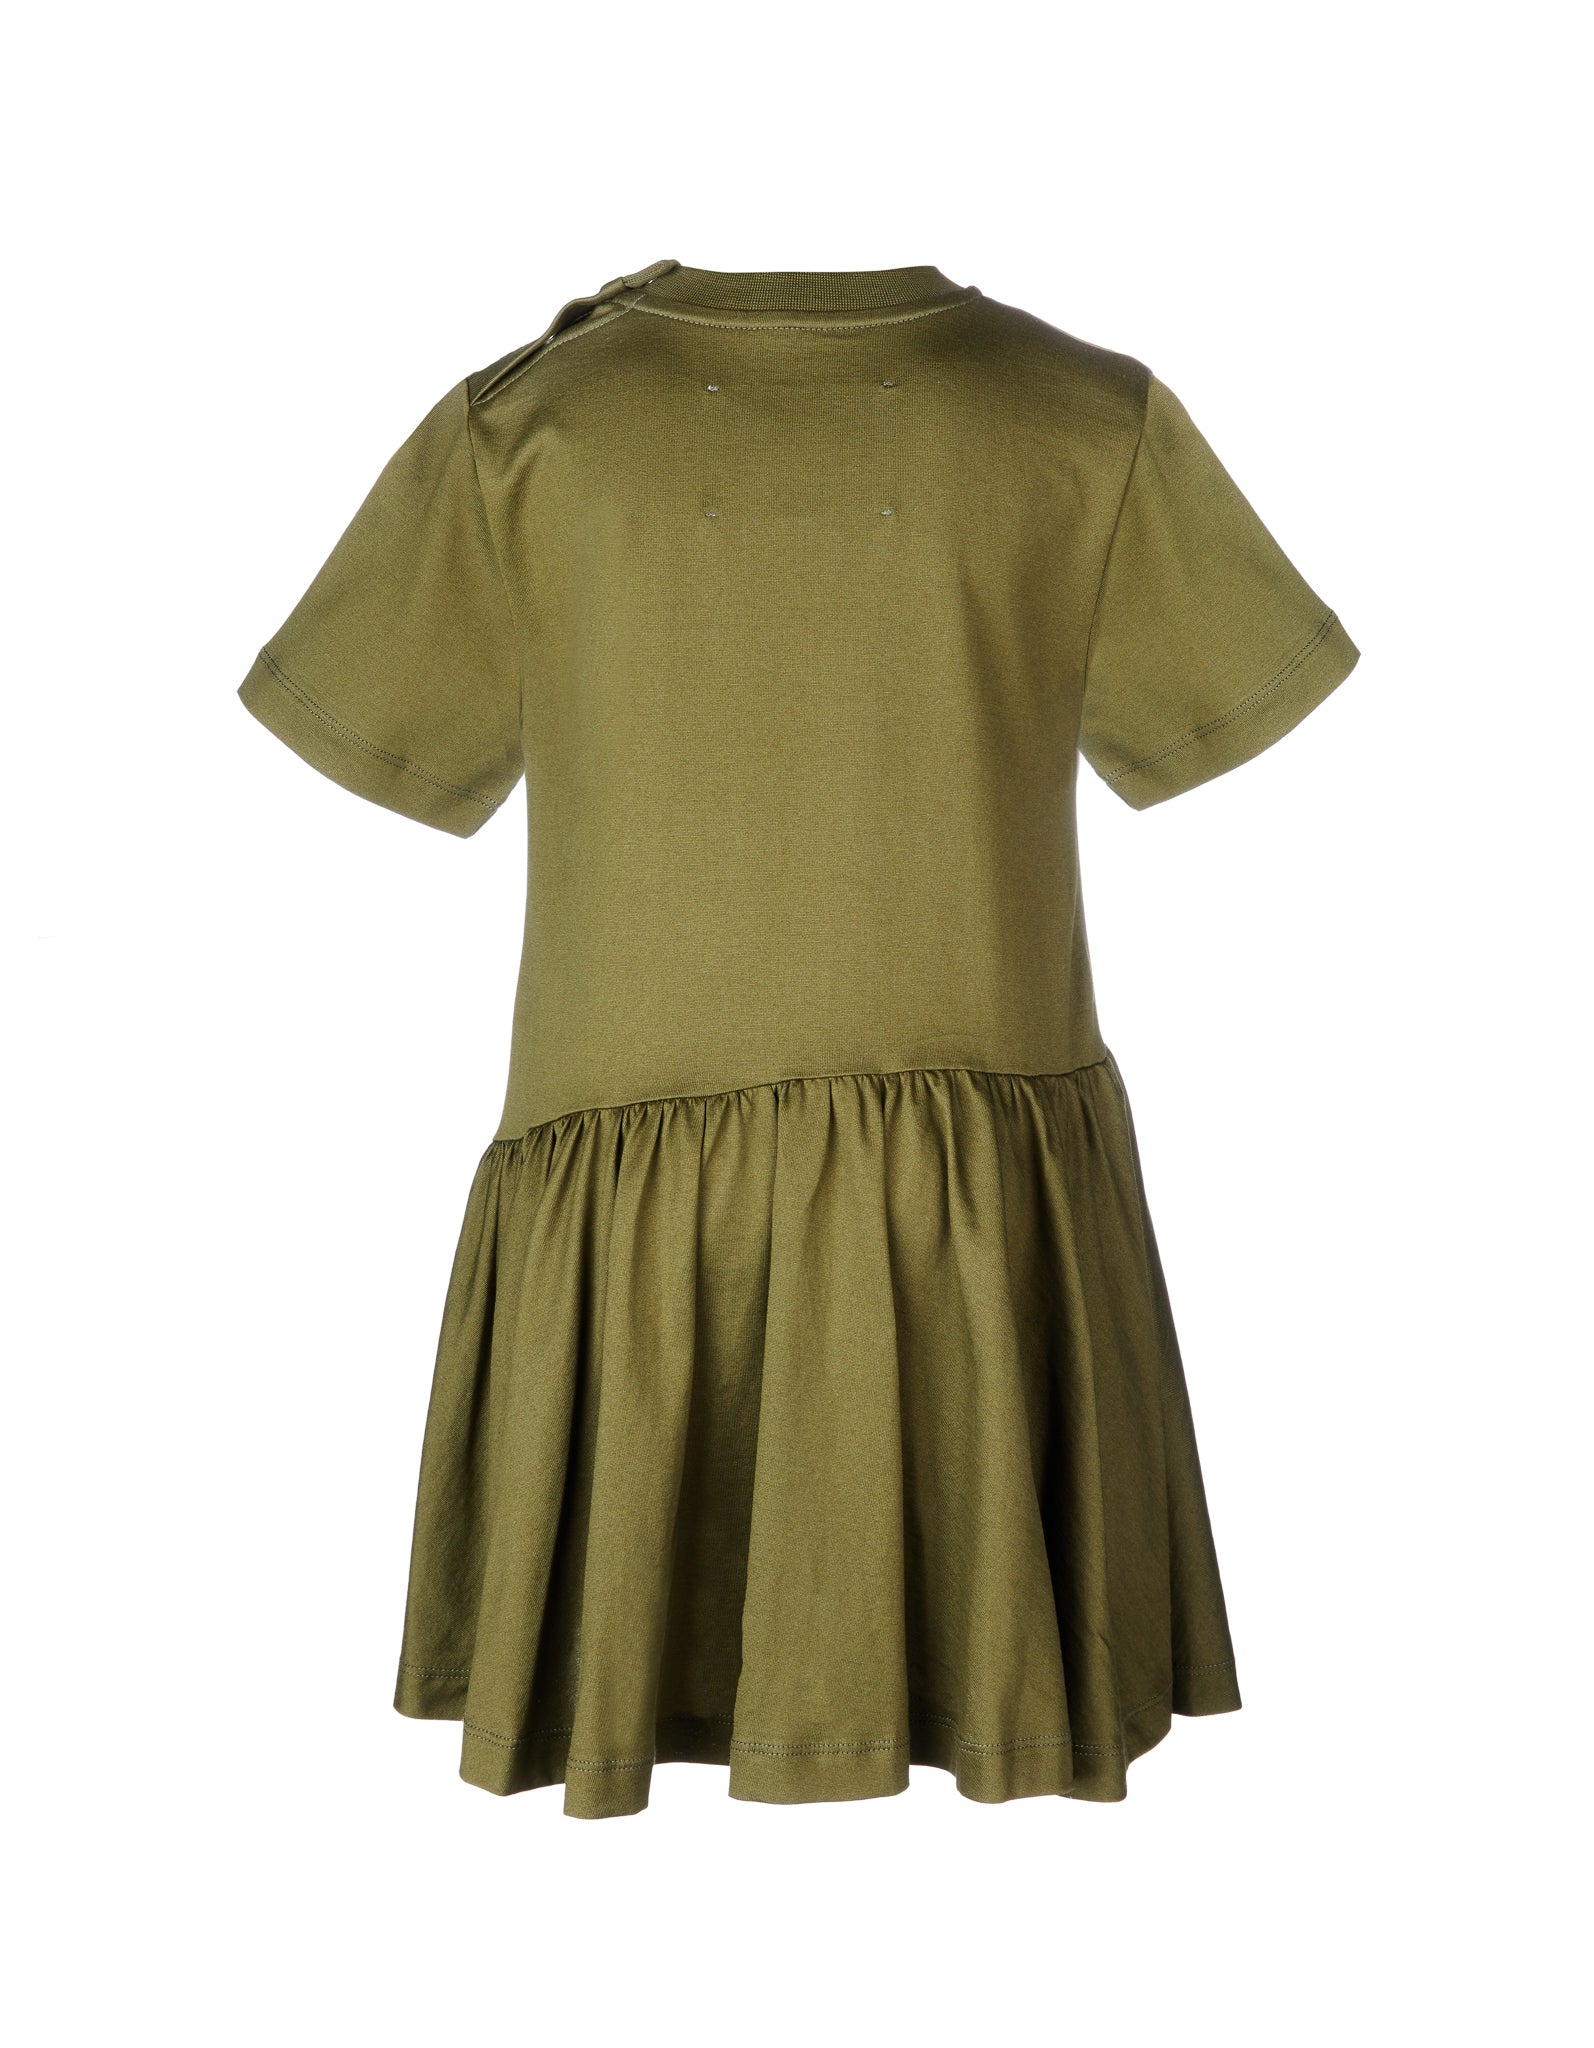 GATHERED SEAMS DRESS IN KHAKI